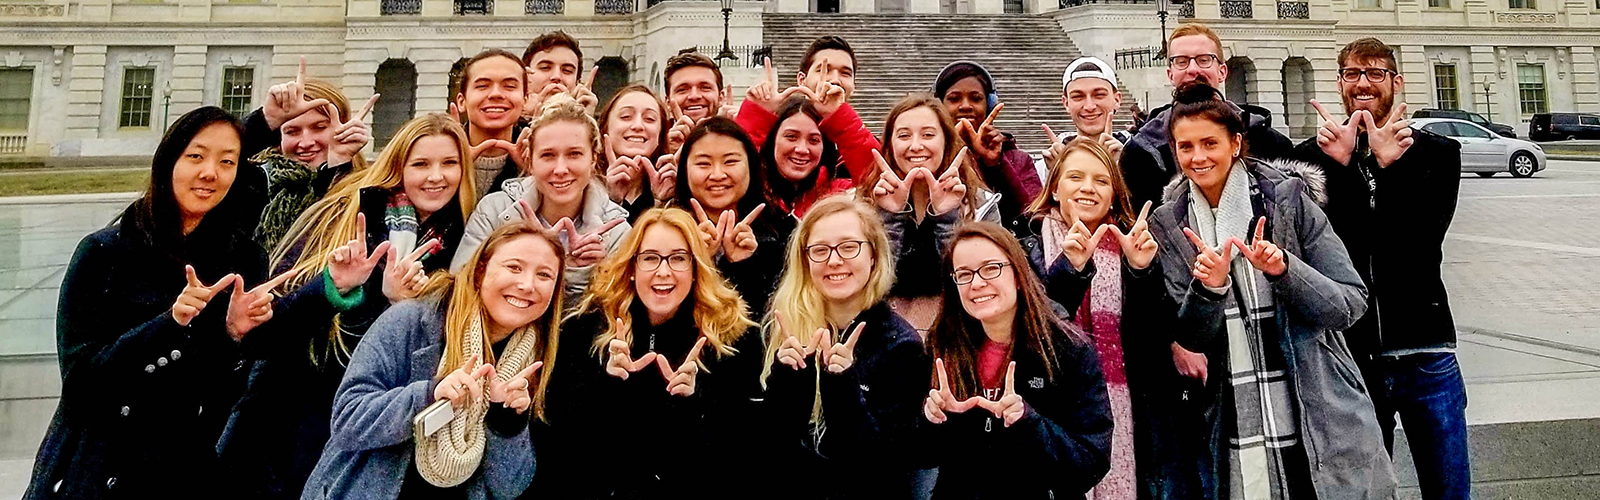 Wisconsin in Washington Students flash Finger W's in front of the US capitol building